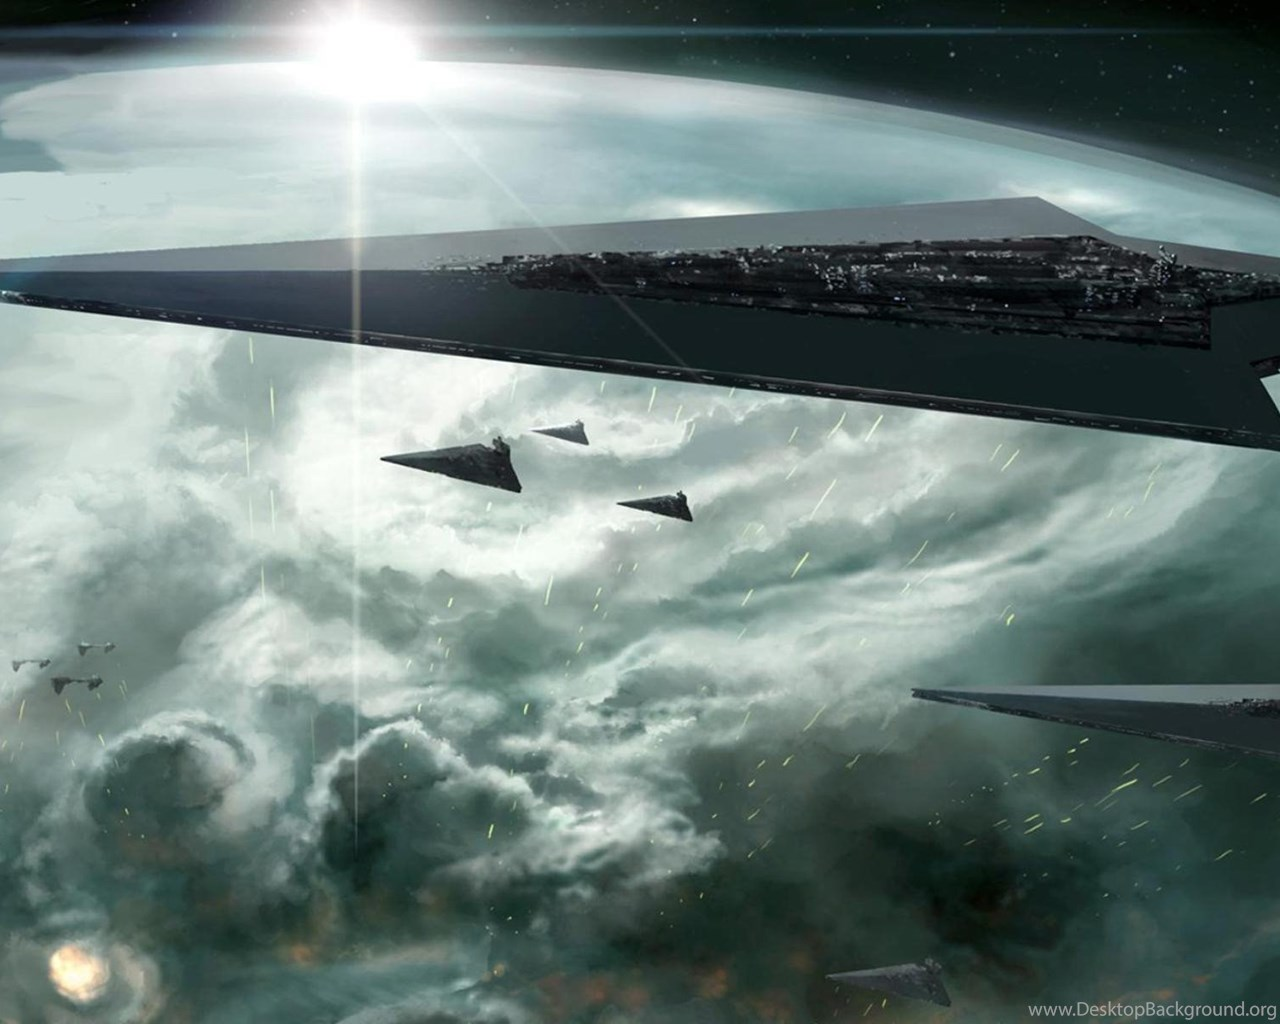 Science Fiction Star Wars Space Star Destroyer Wallpapers Hd Desktop Background